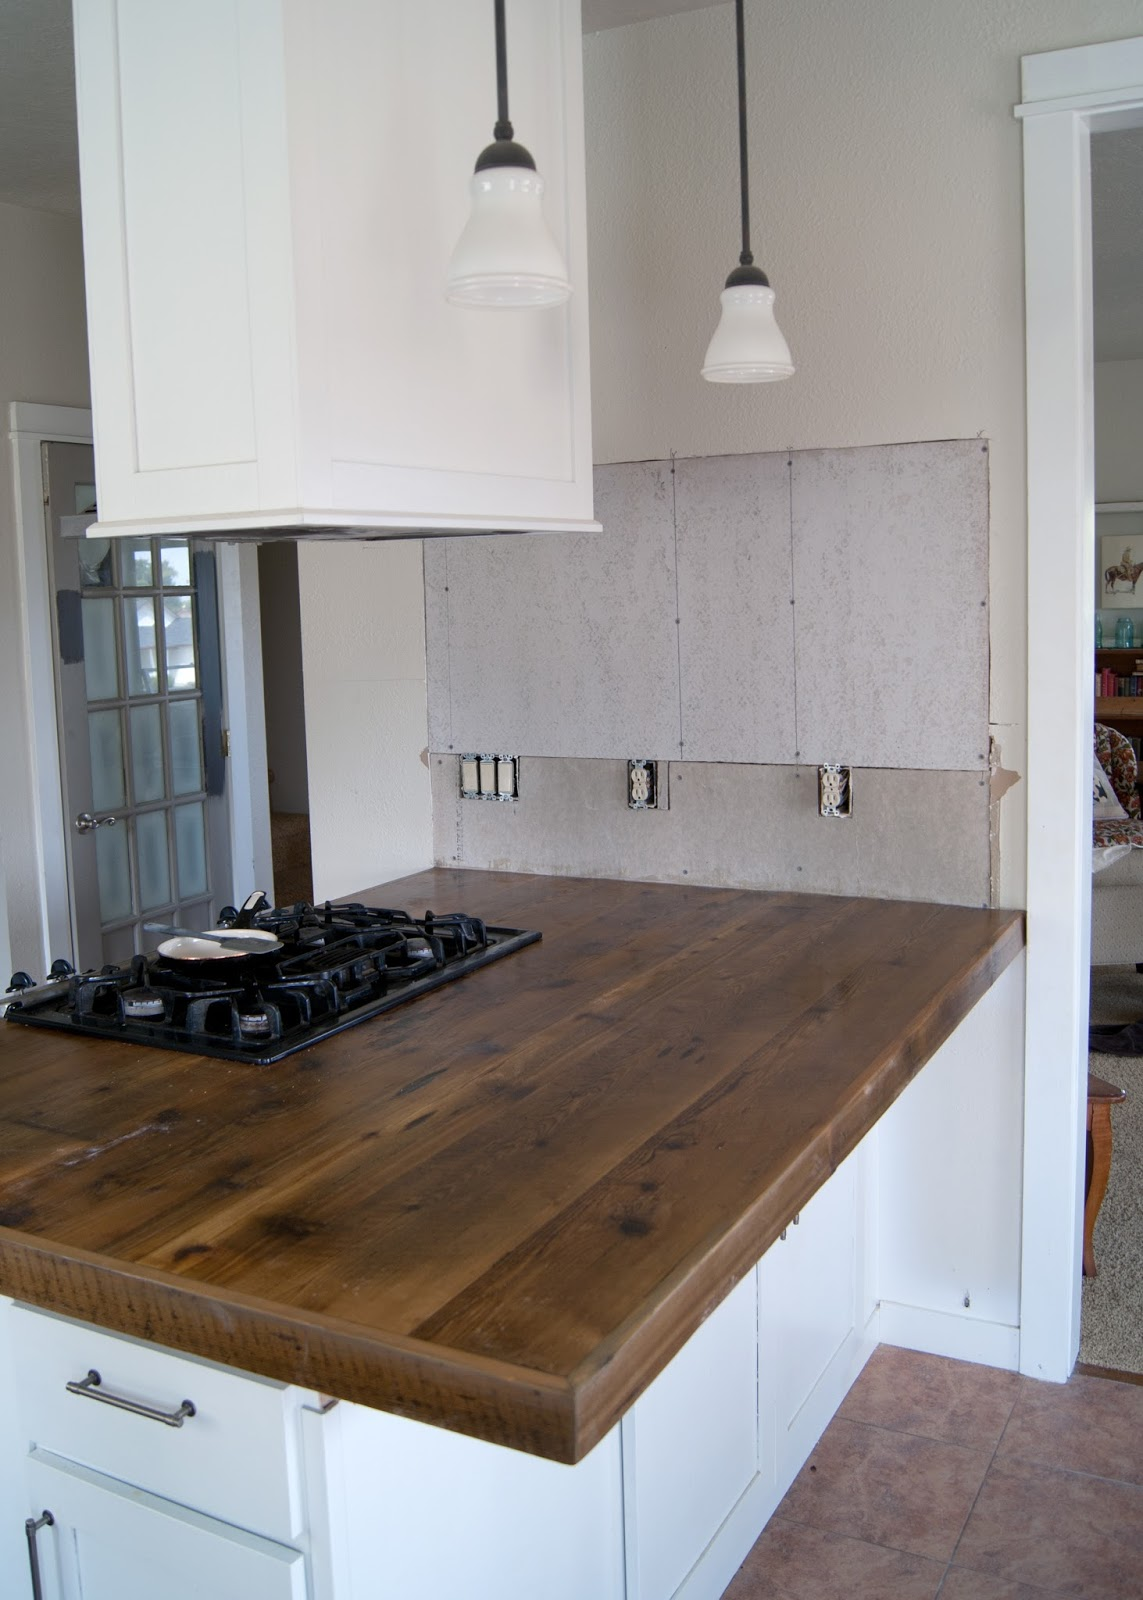 How To Make A Wooden Kitchen Countertop